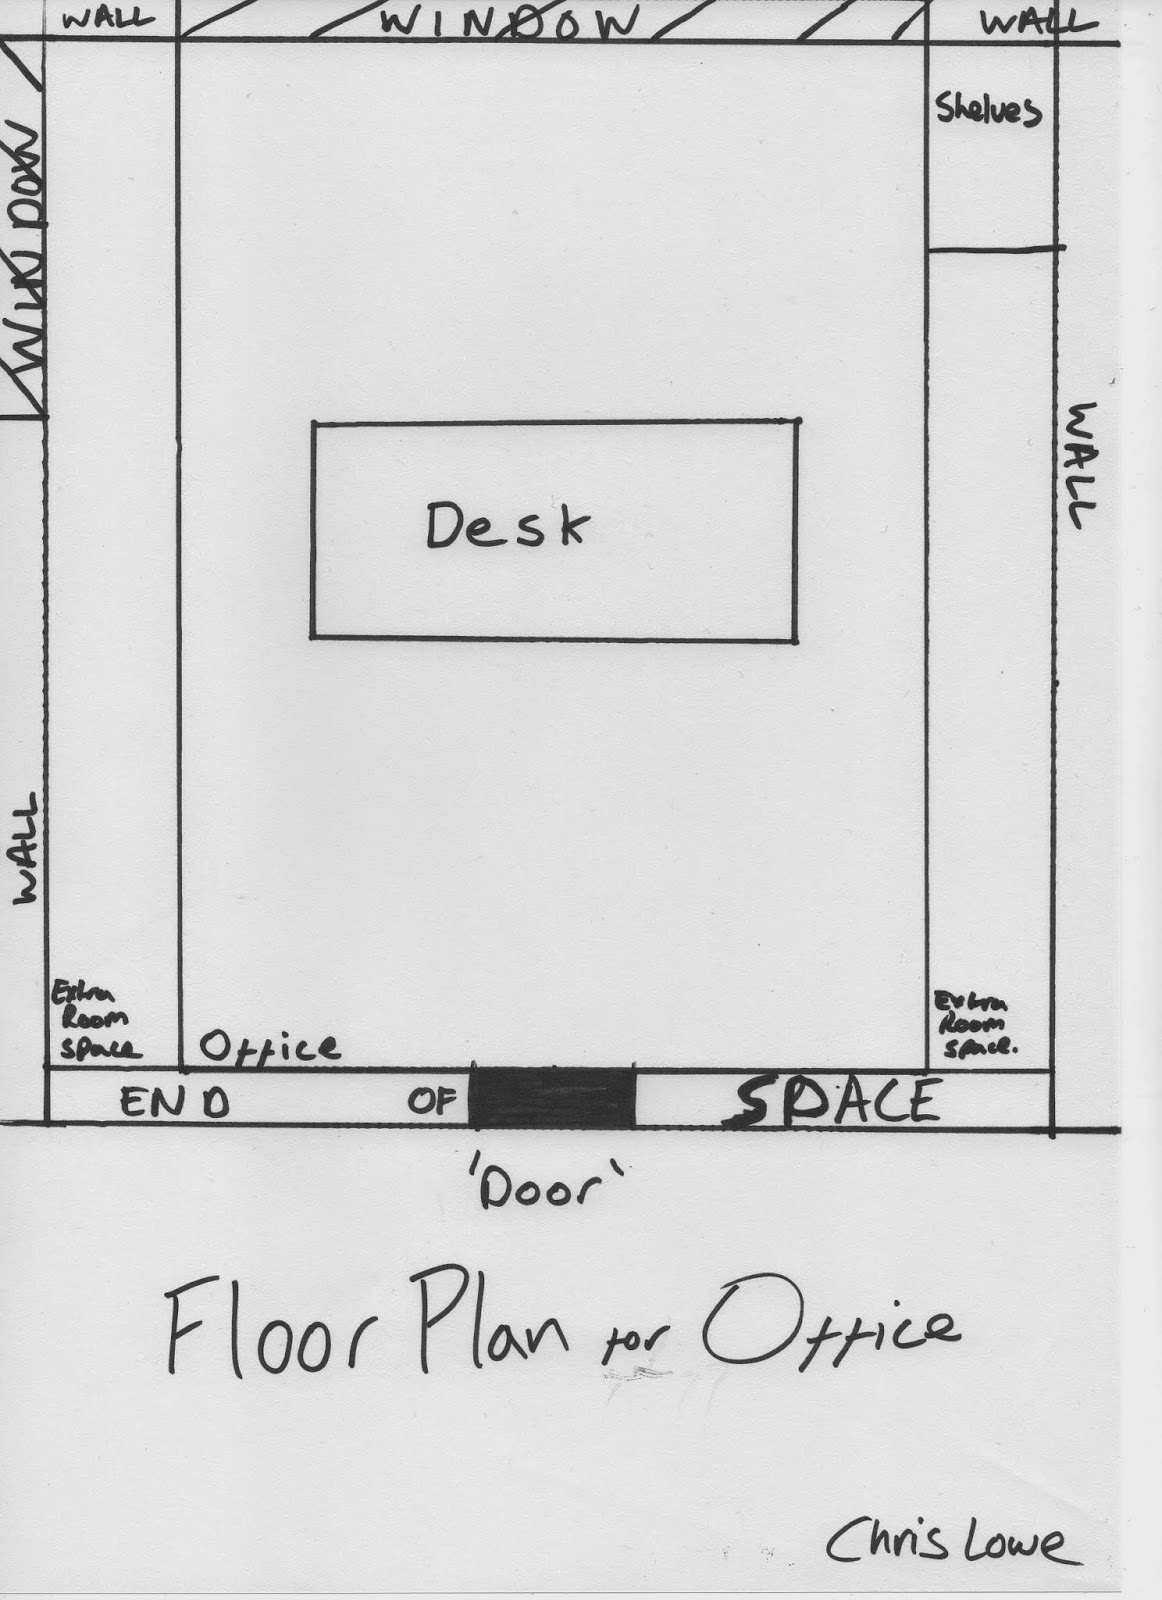 Chris lowe 39 s creative media blog for Office floor plan samples